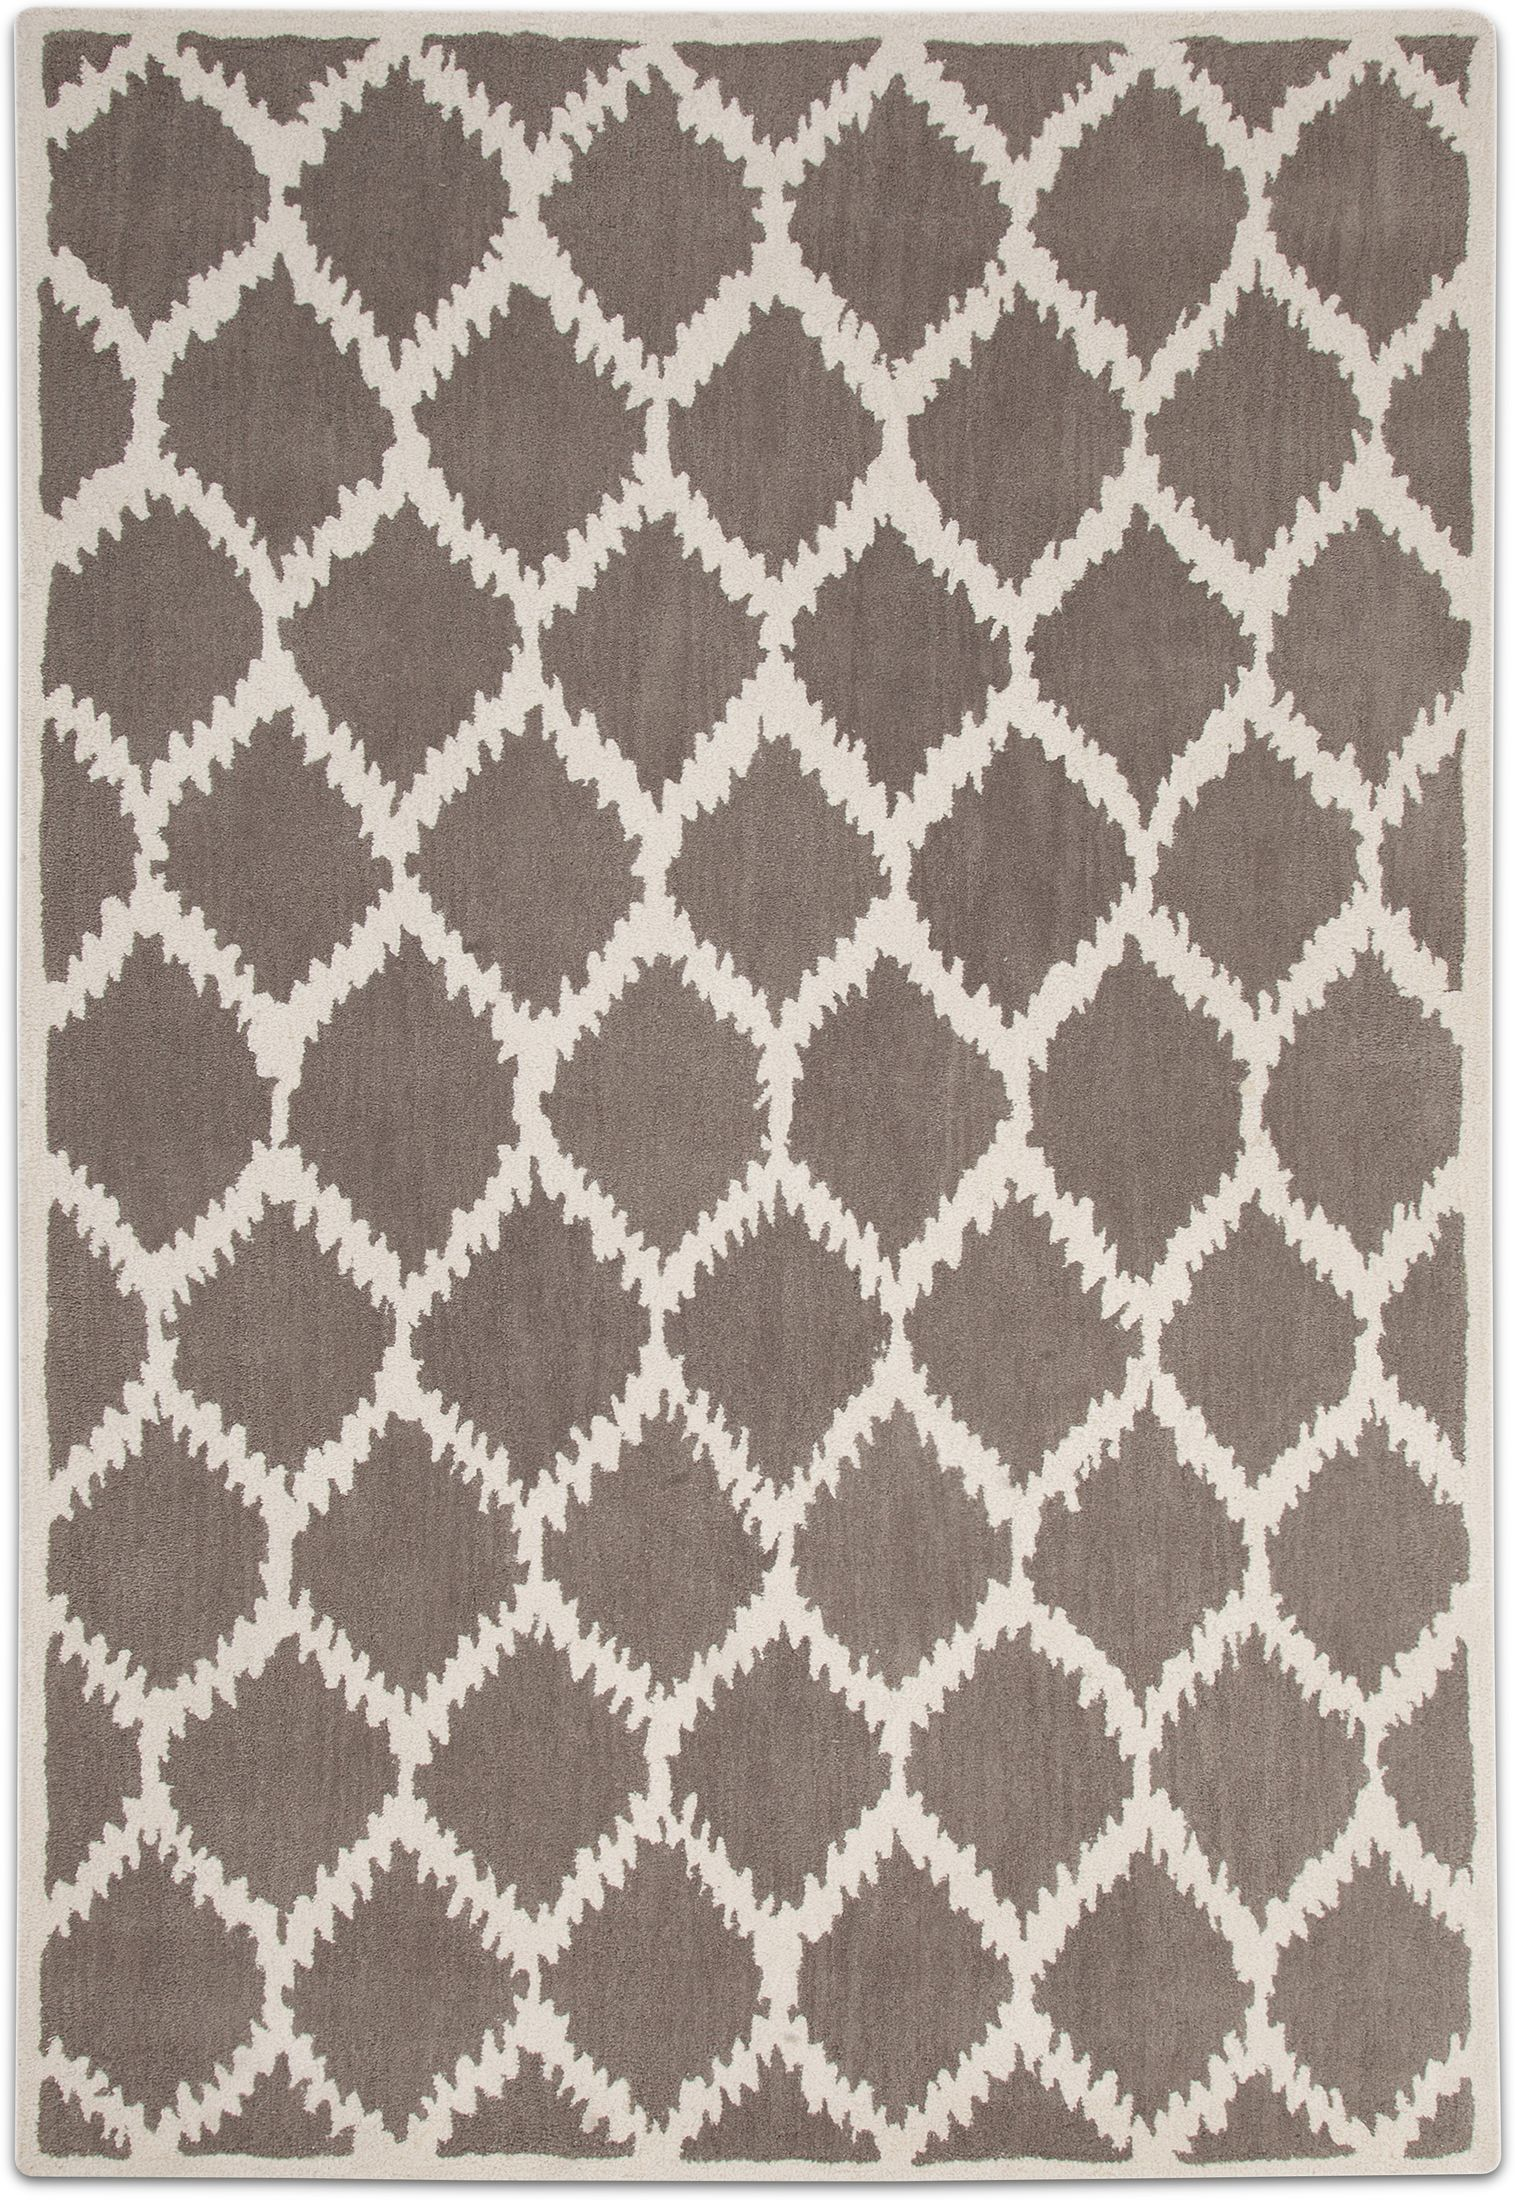 Rugs - Lifestyle Kimble Area Rug - Gray and Ivory